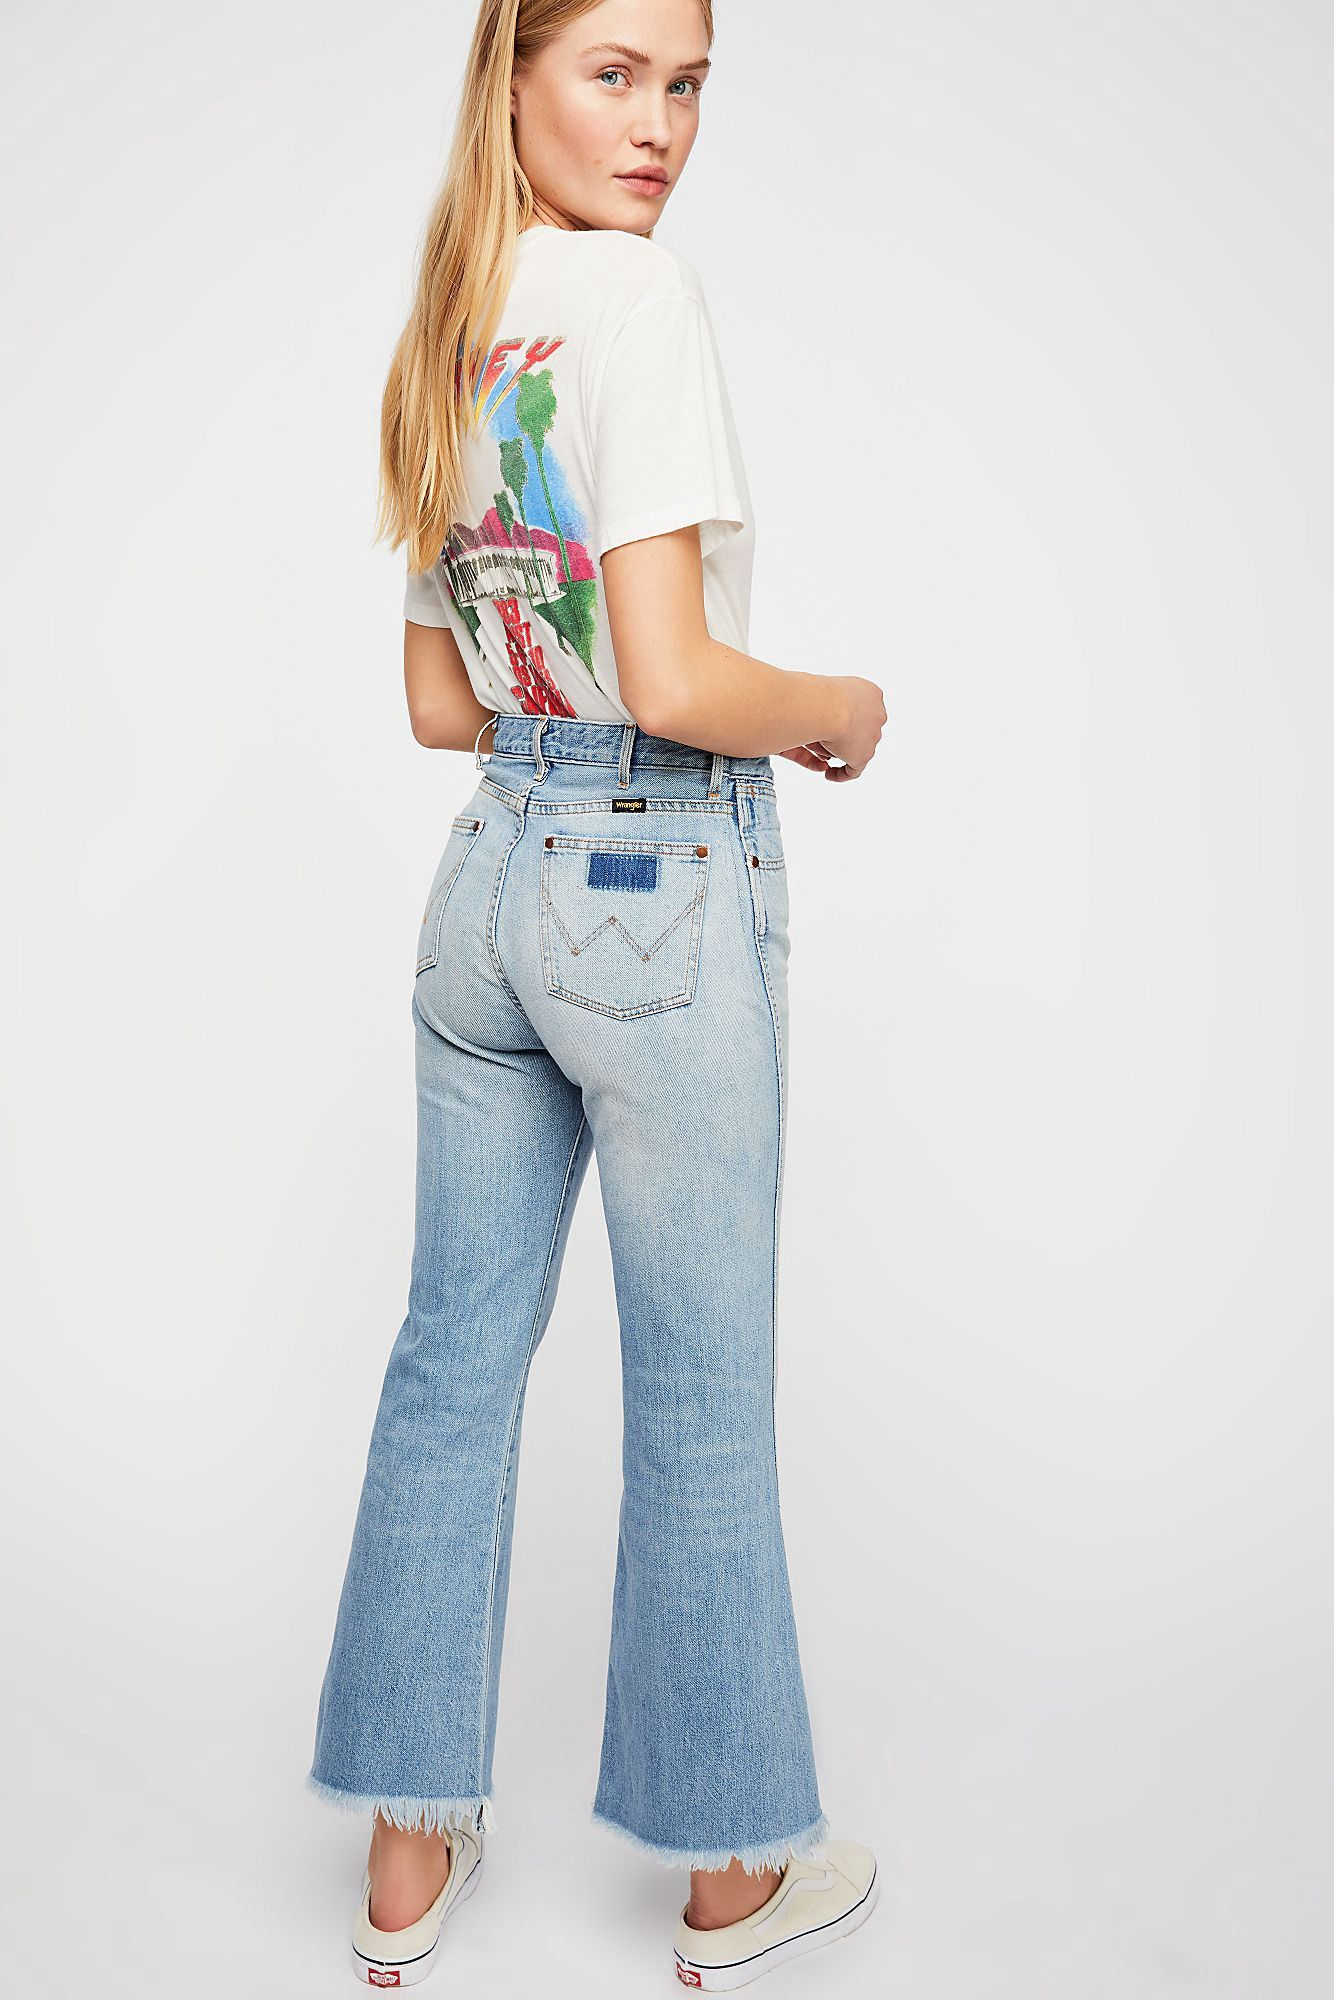 e8f2db32ddc Free People Wrangler Retro Crop Flare Jeans - 26 in 2019 | Products ...